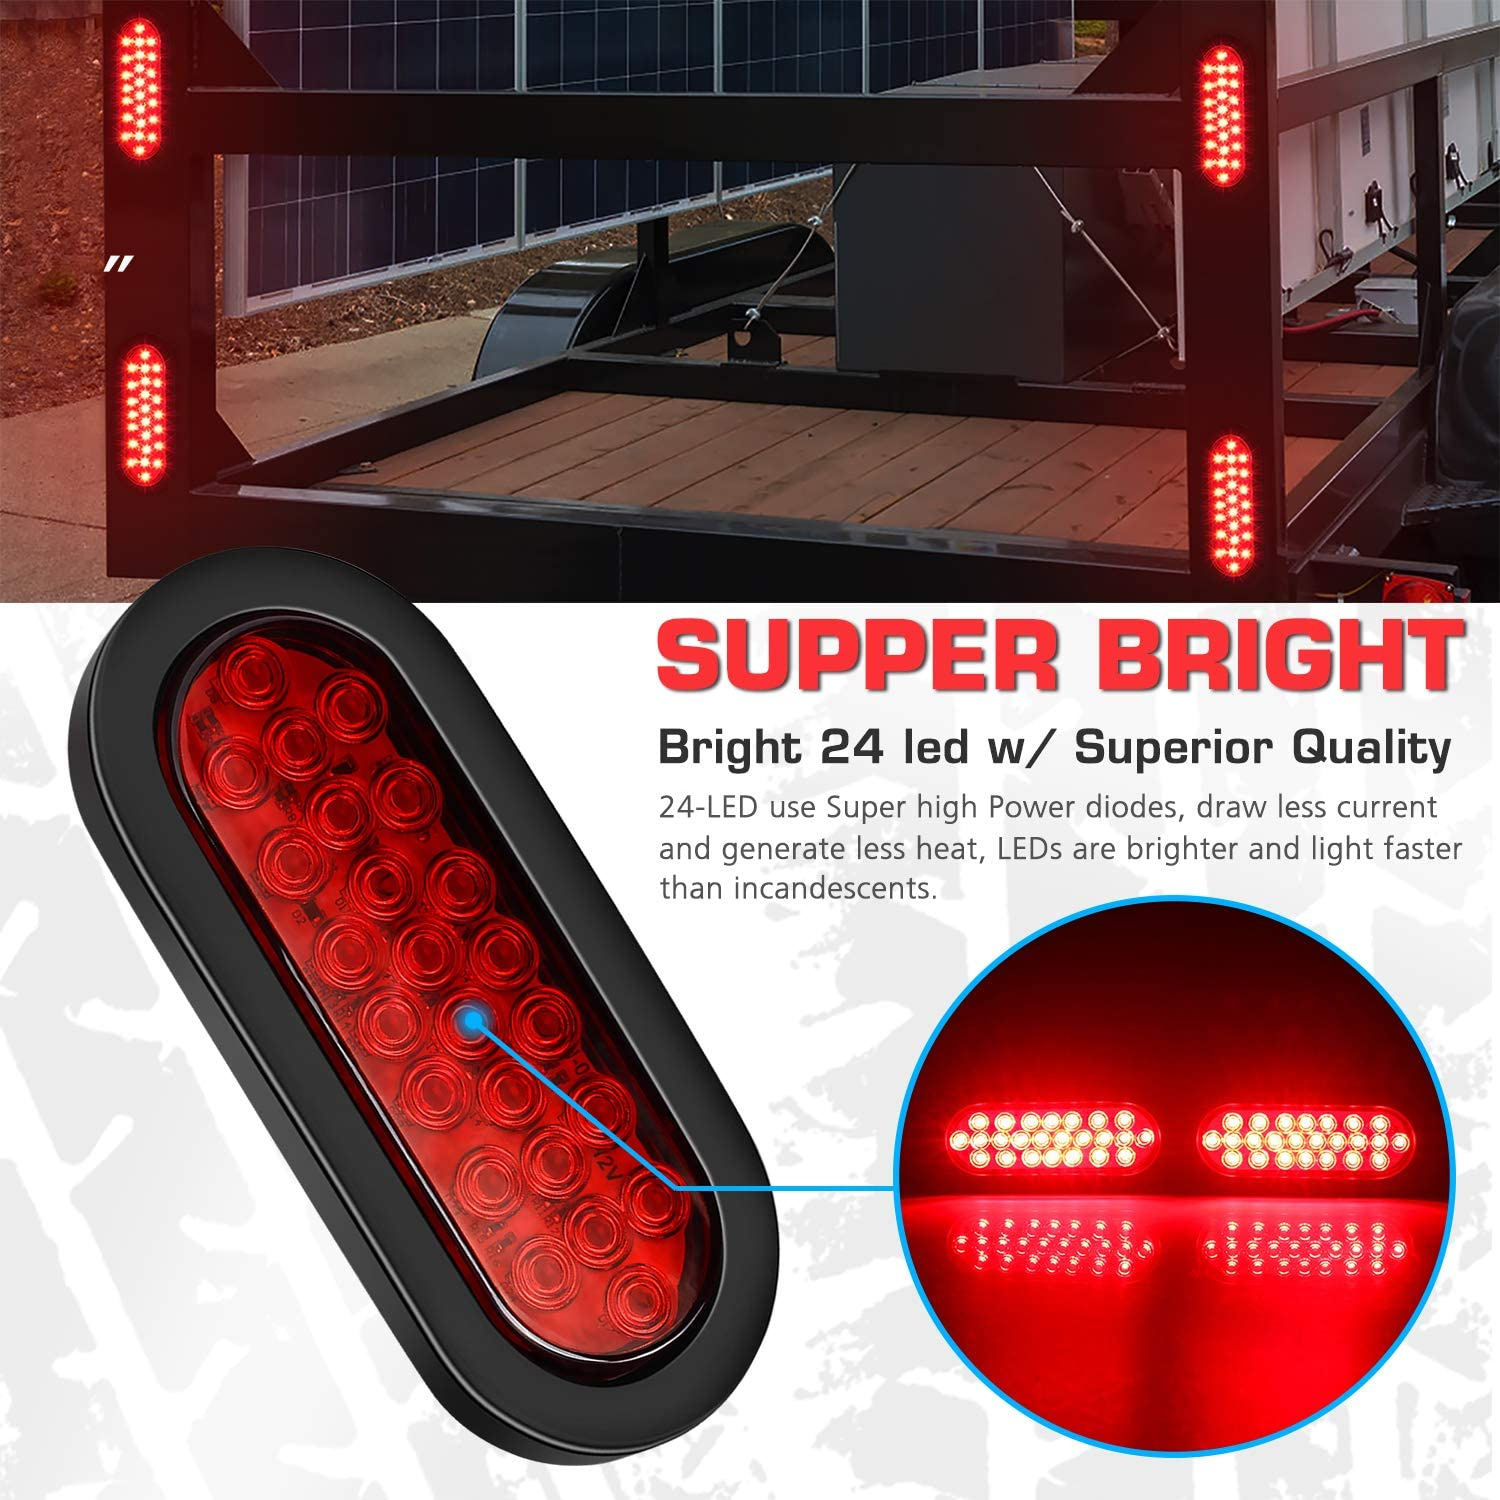 DOT Certified 4 Pack IP67 Super Bright Red 24LED Brake Turn Stop Marker Reverse Tail Lights with Waterproof Rubber Gaskets for Boat Trailer Truck RV 6 Inchs Oval Trailer Lights